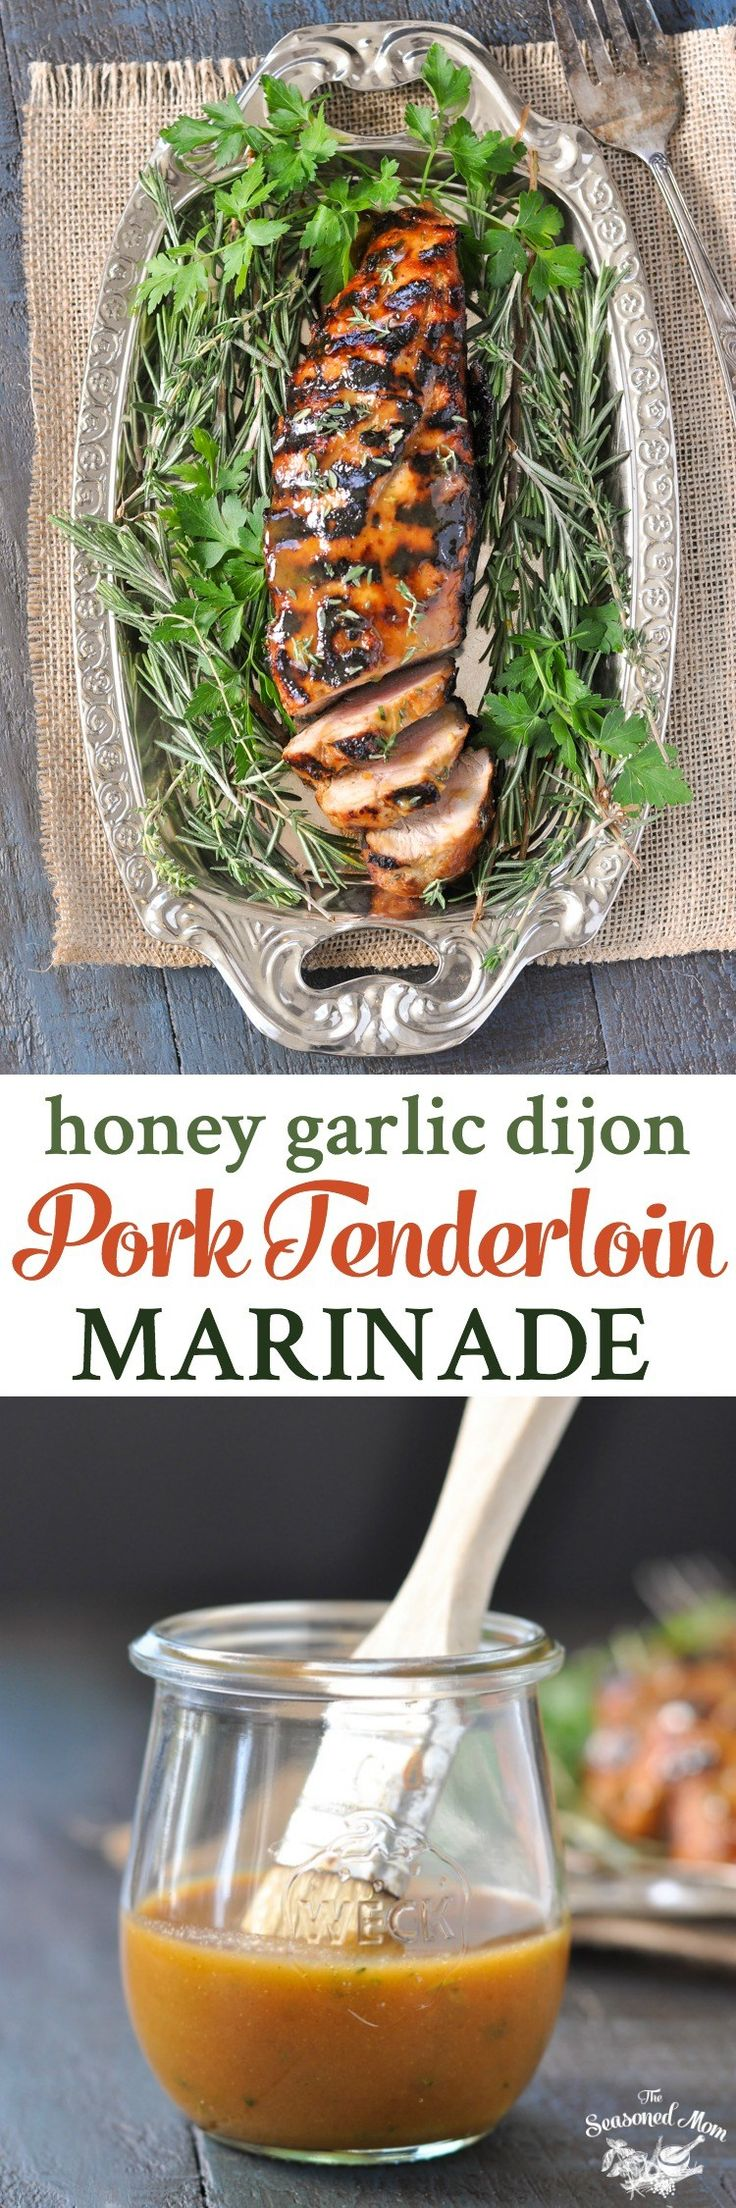 This Honey Garlic Dijon Pork Tenderloin Marinade only requires 10 minutes of prep and is the perfect easy dinner for any busy weeknight!